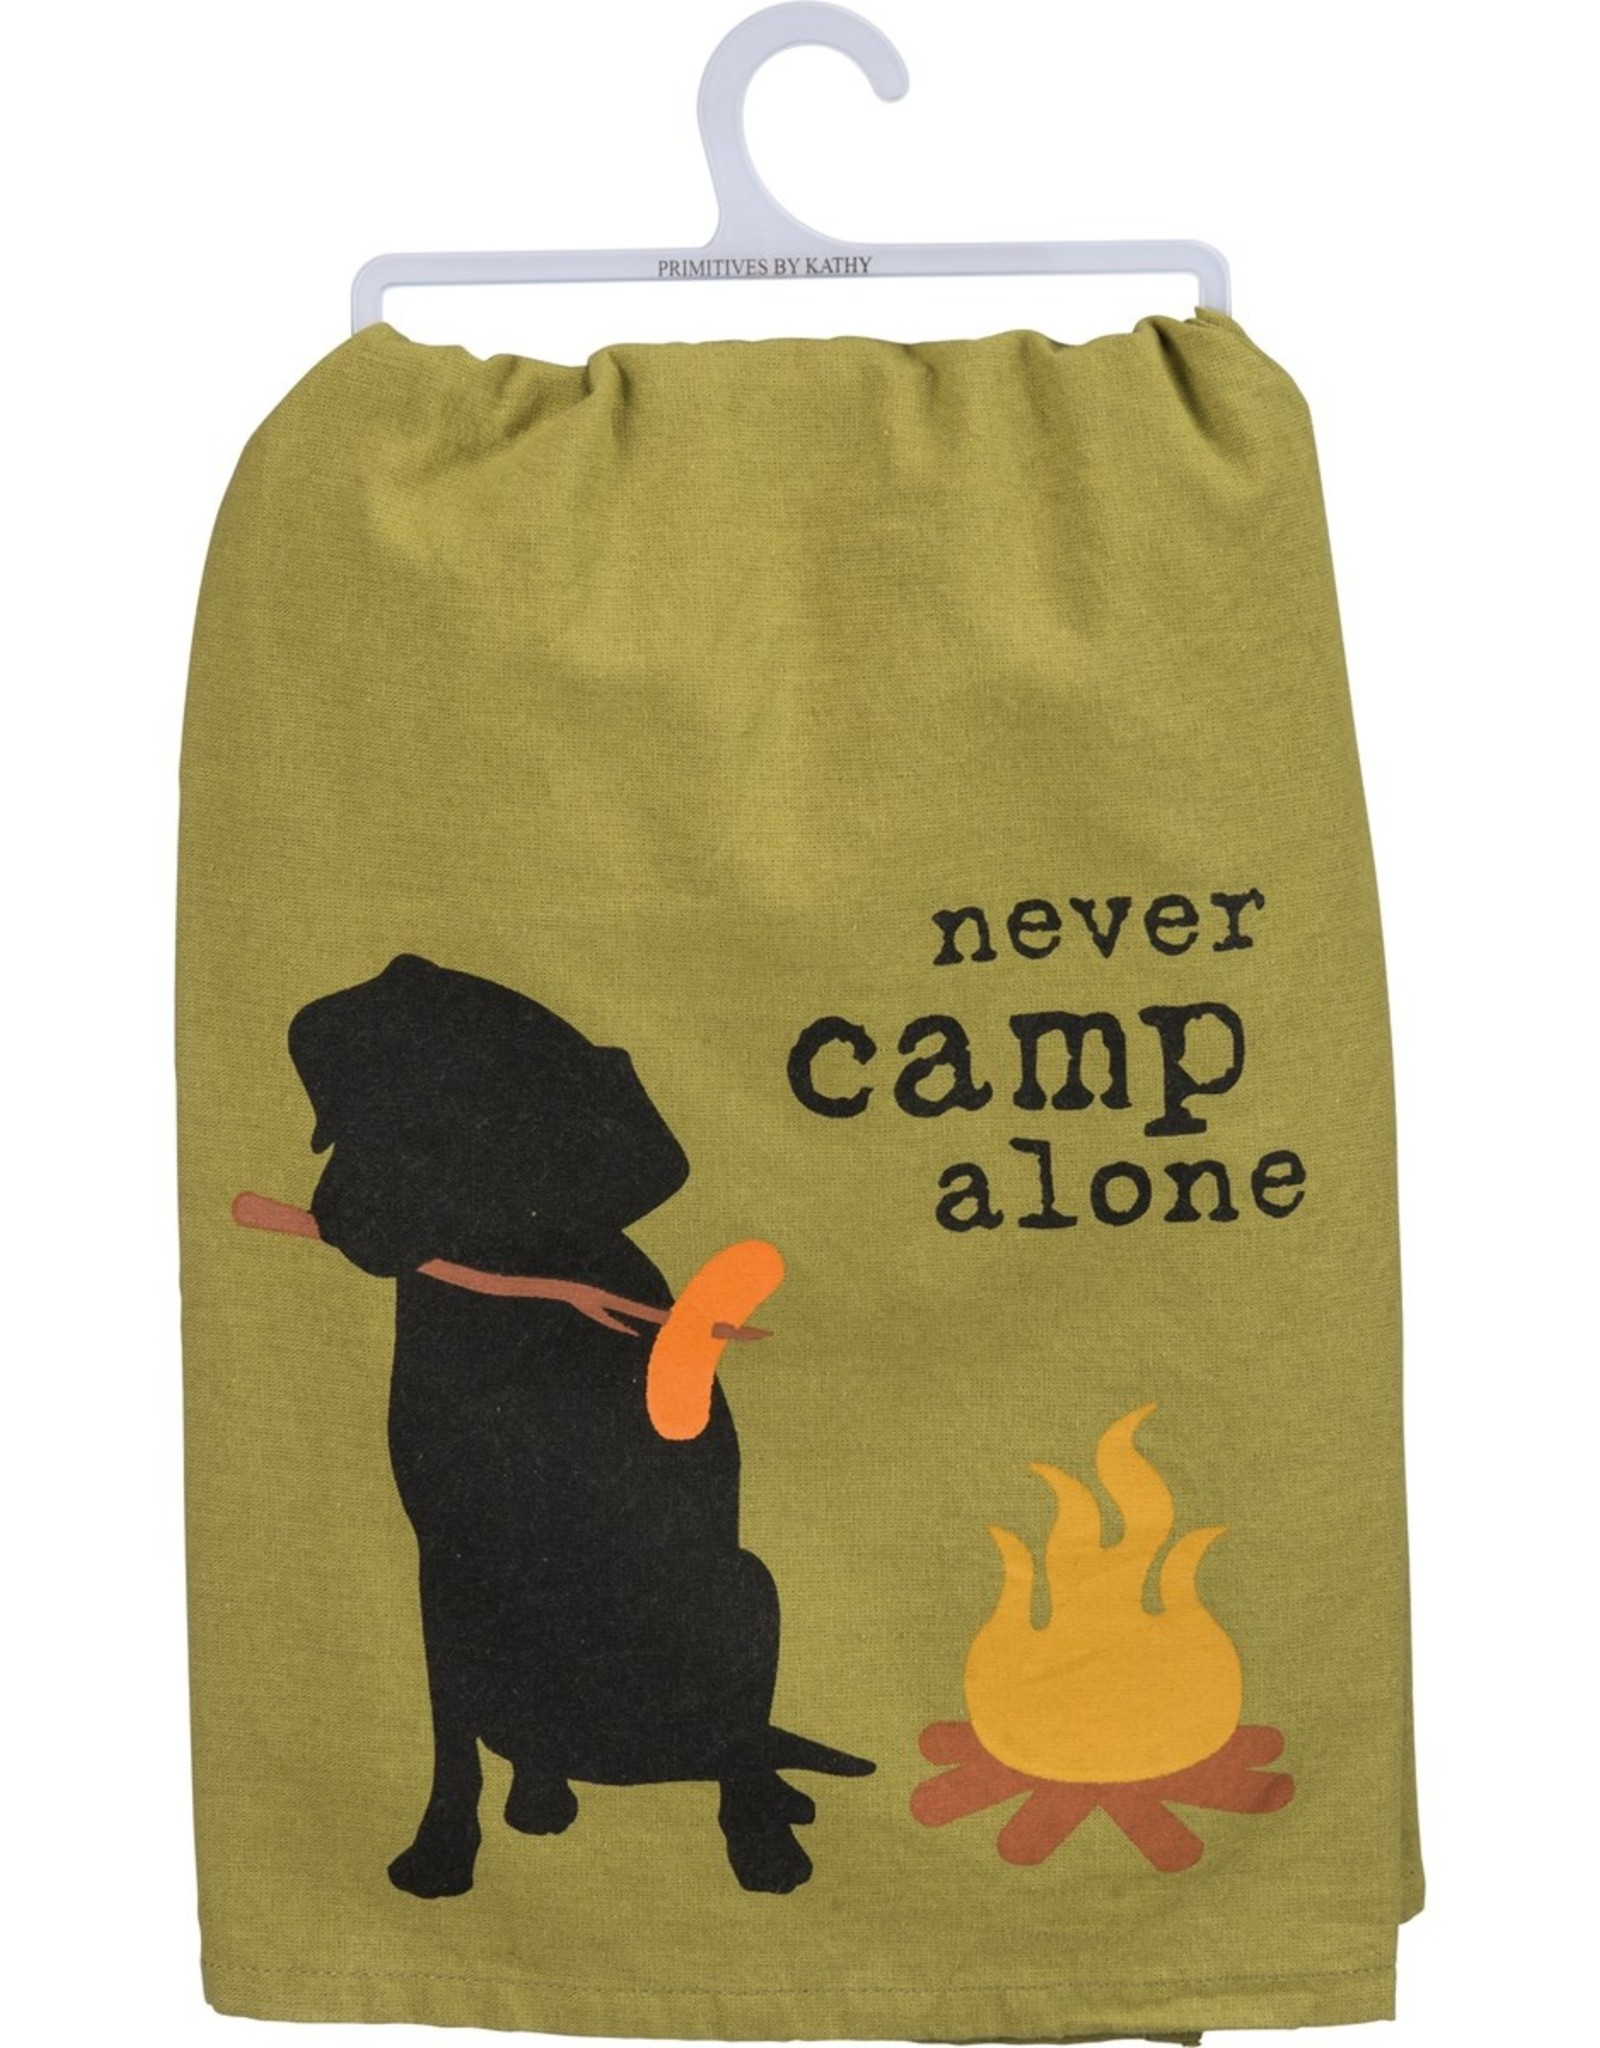 PRIMITIVES BY KATHY DISH TOWEL - NEVER CAMP ALONE